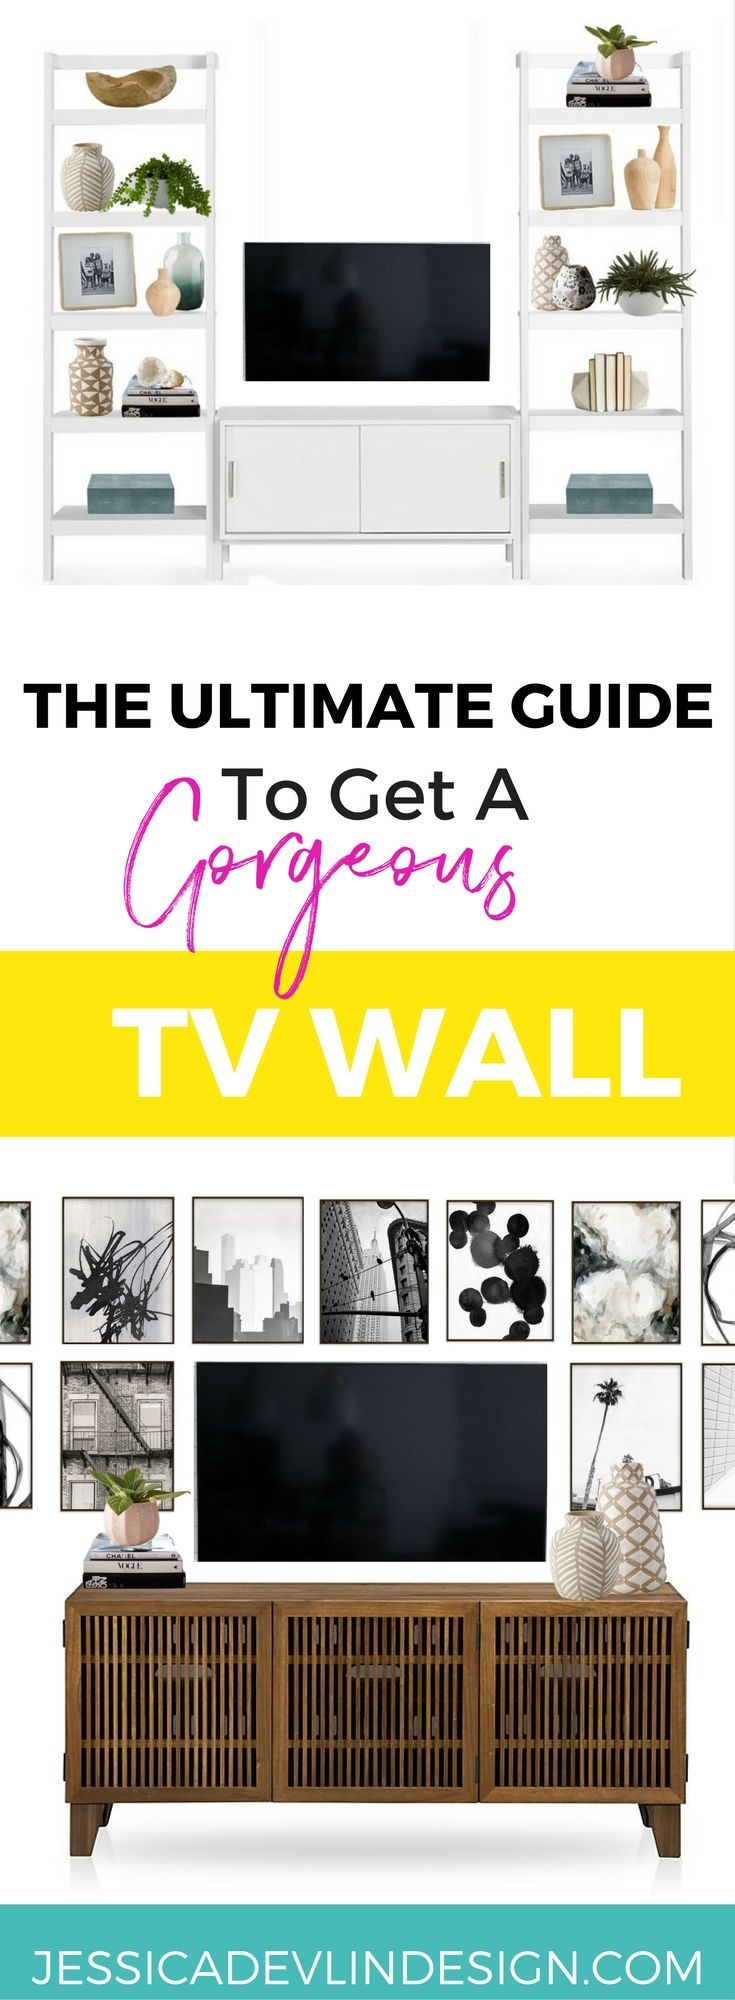 Creative ways to decorate around the TV. | For the Homieeee ...